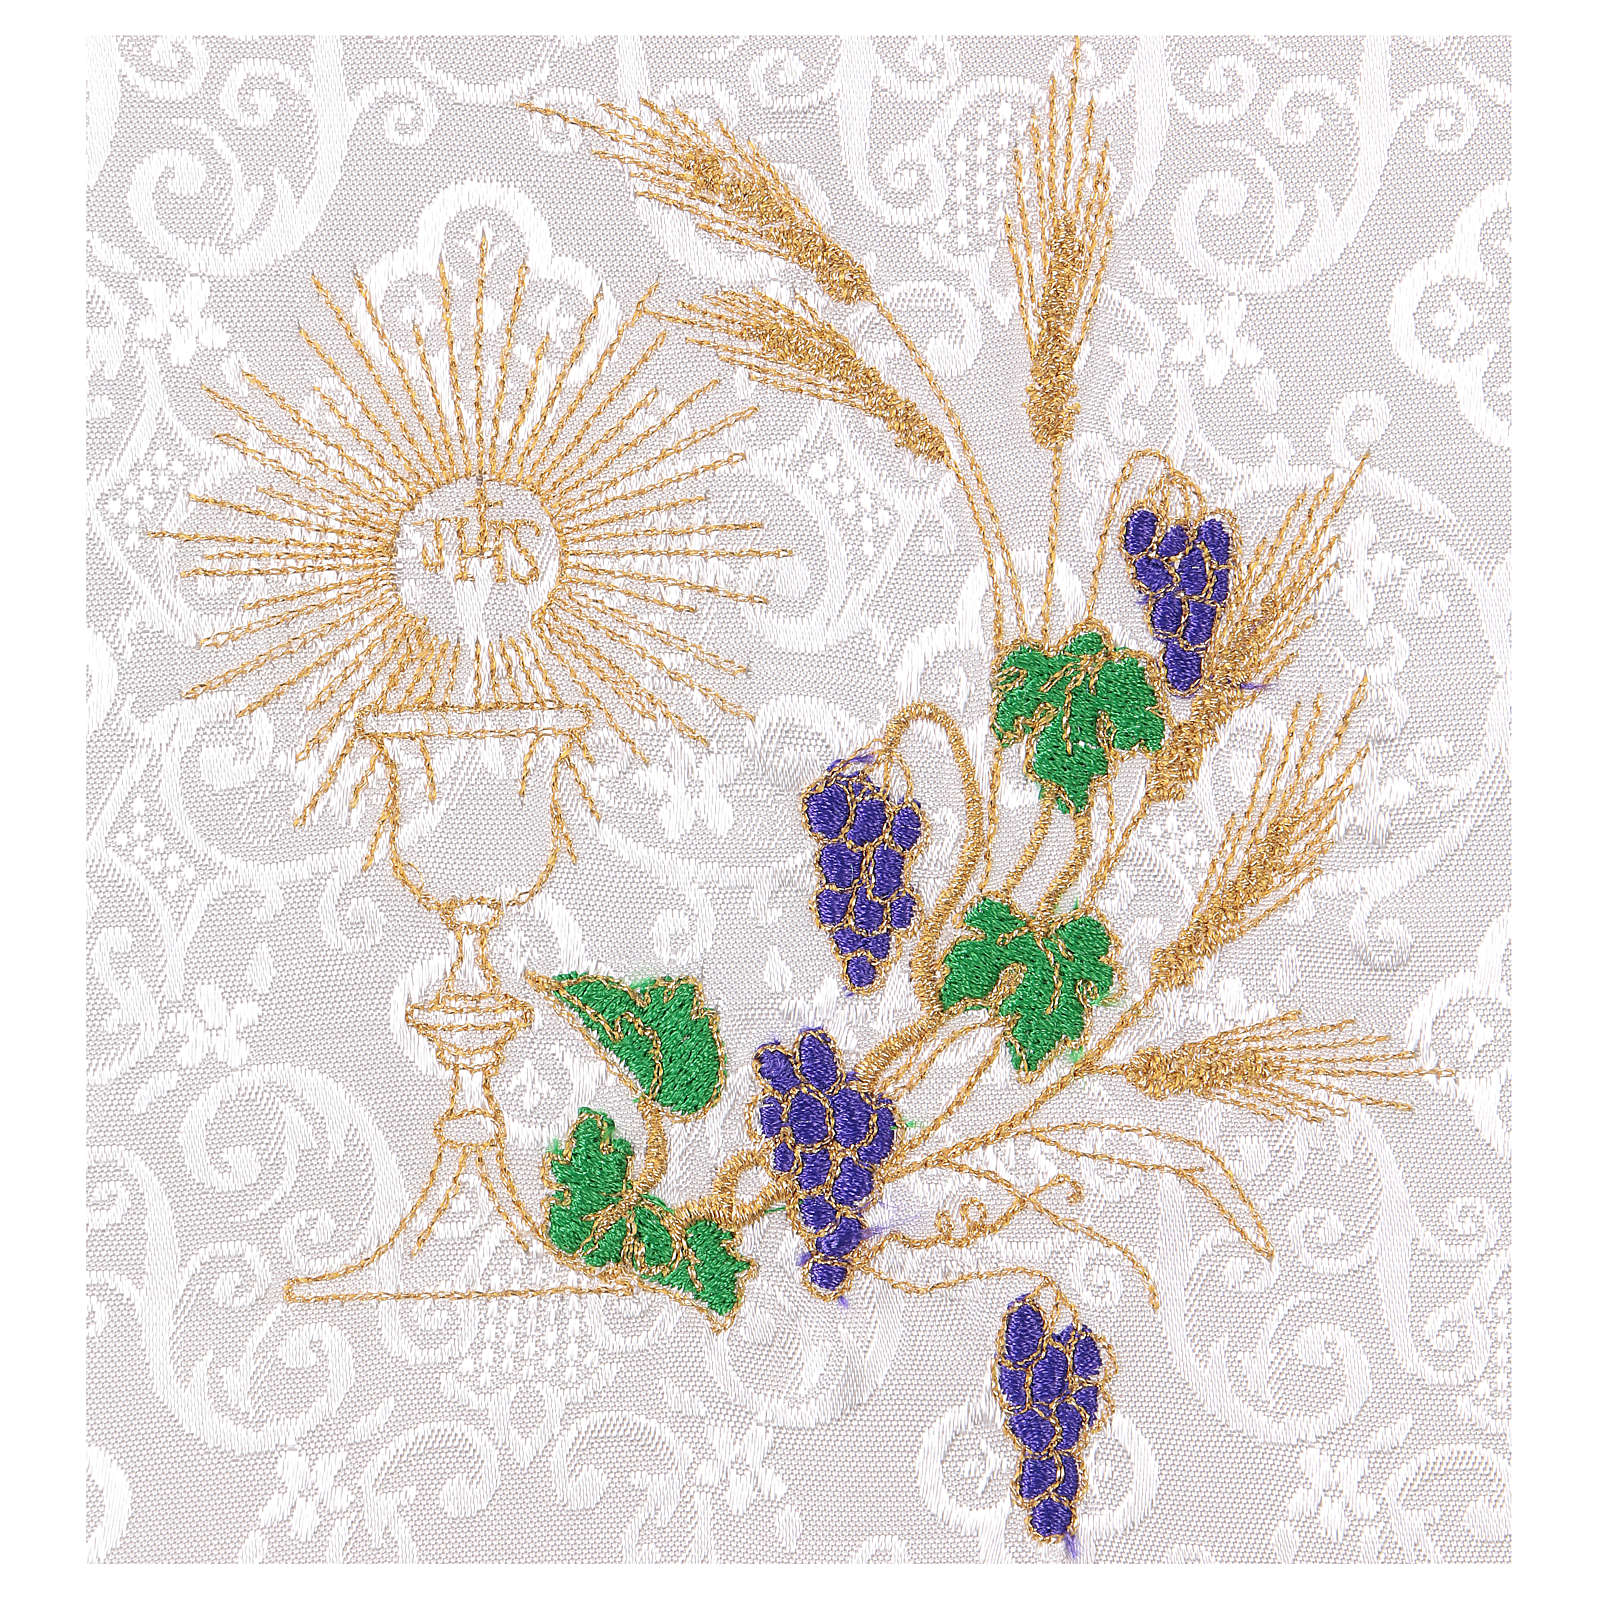 Chalice veil (pall) with chalice and grapes embroidery on white damask fabric 4